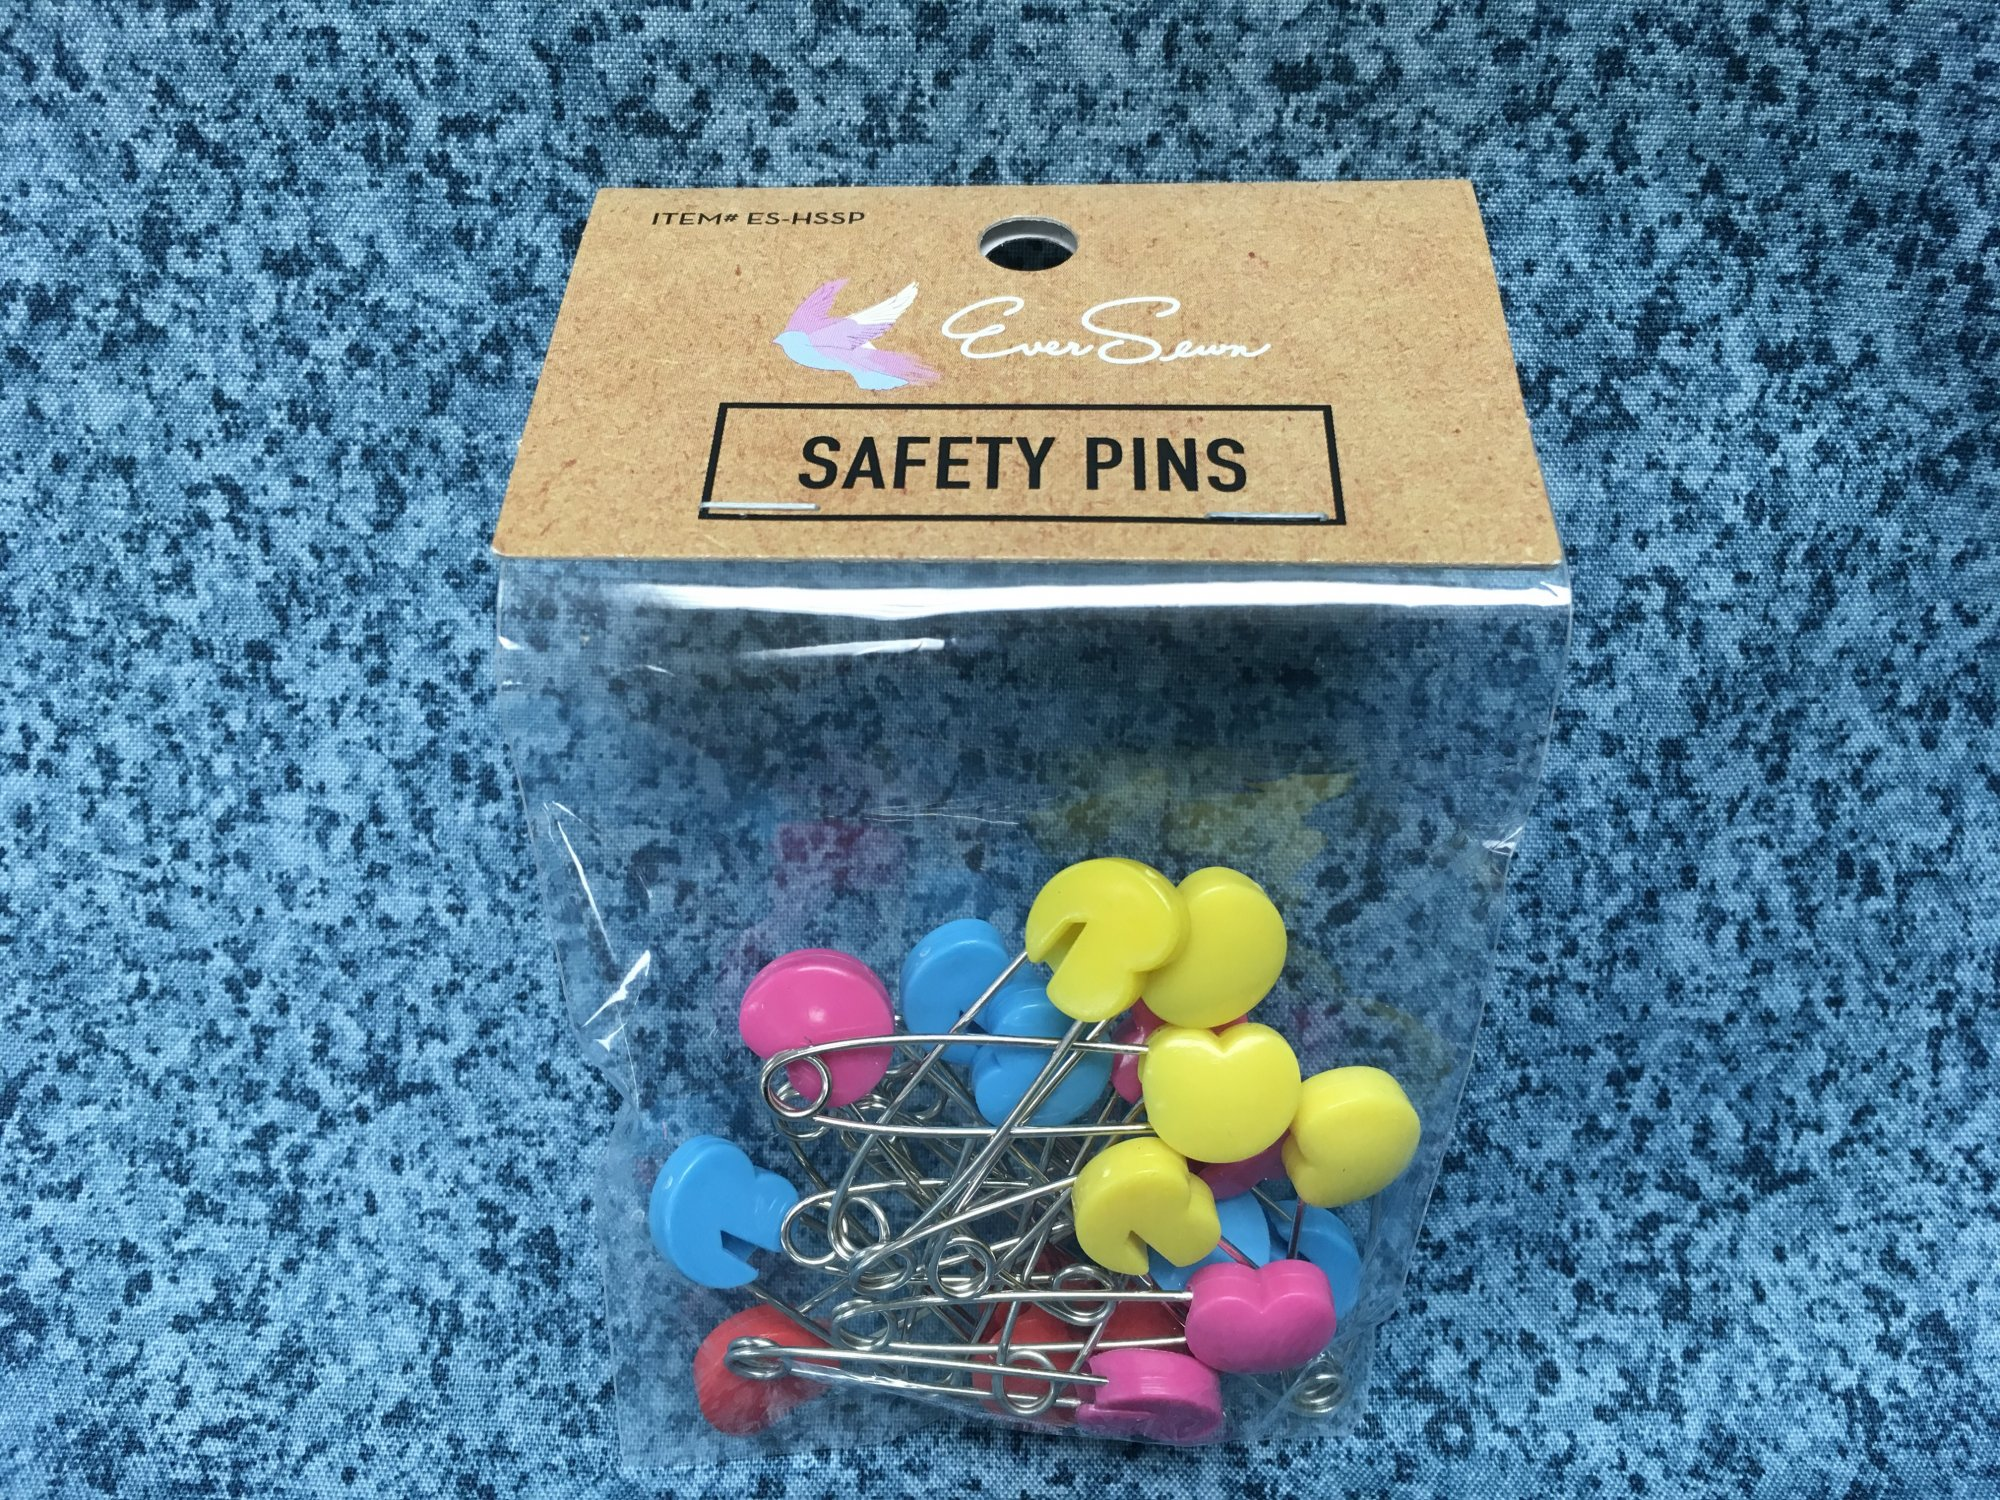 Safety Pins 20/pack ESHSSP by EverSewn